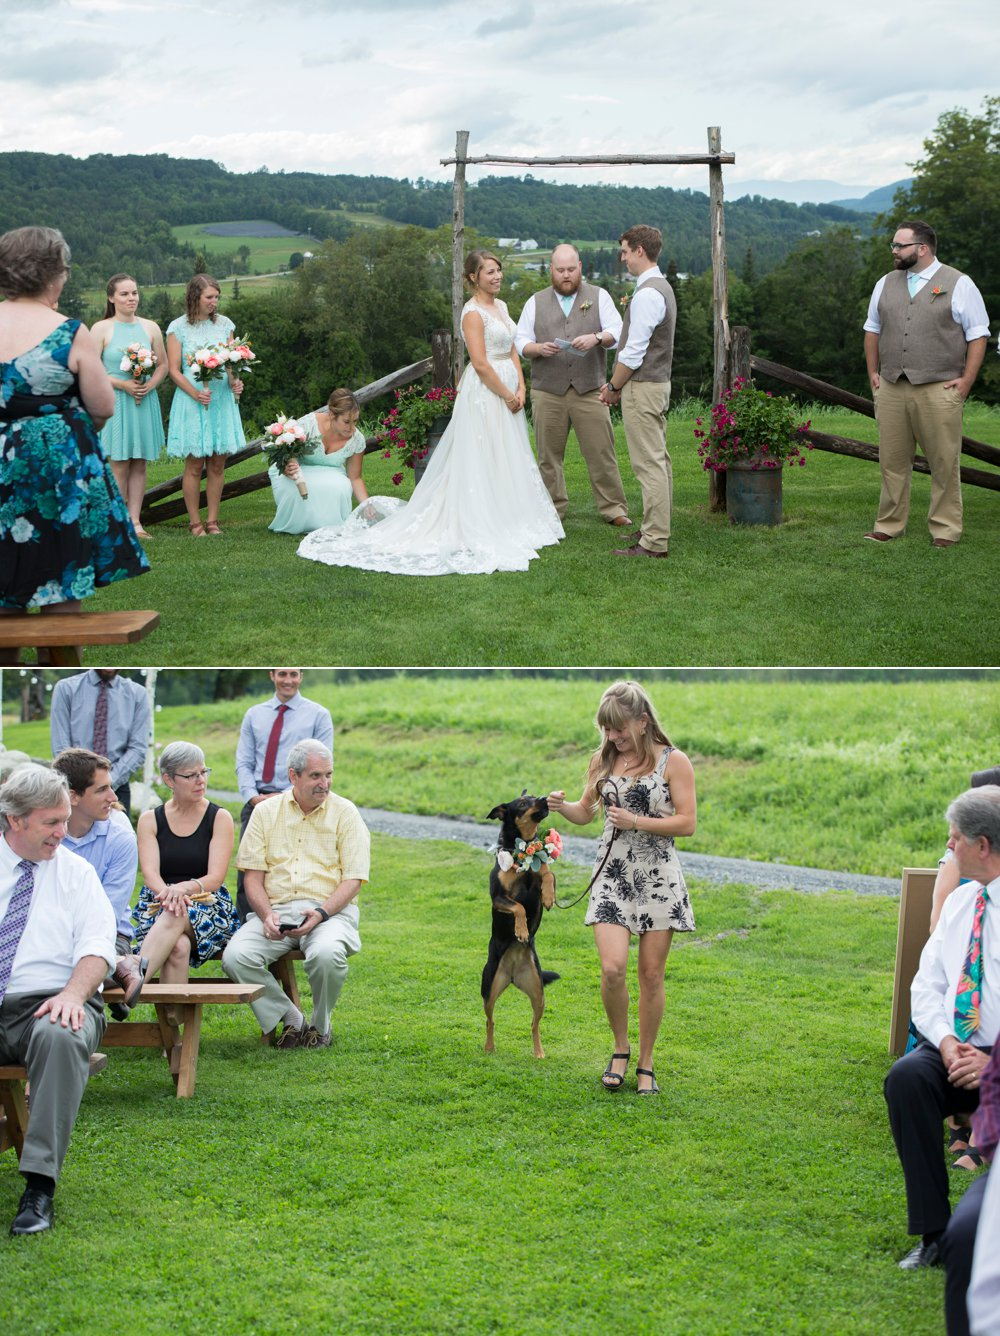 SomerbyJonesPhotography_VermontWedding_CyrBarn_CryBarnWedding_0027.jpg